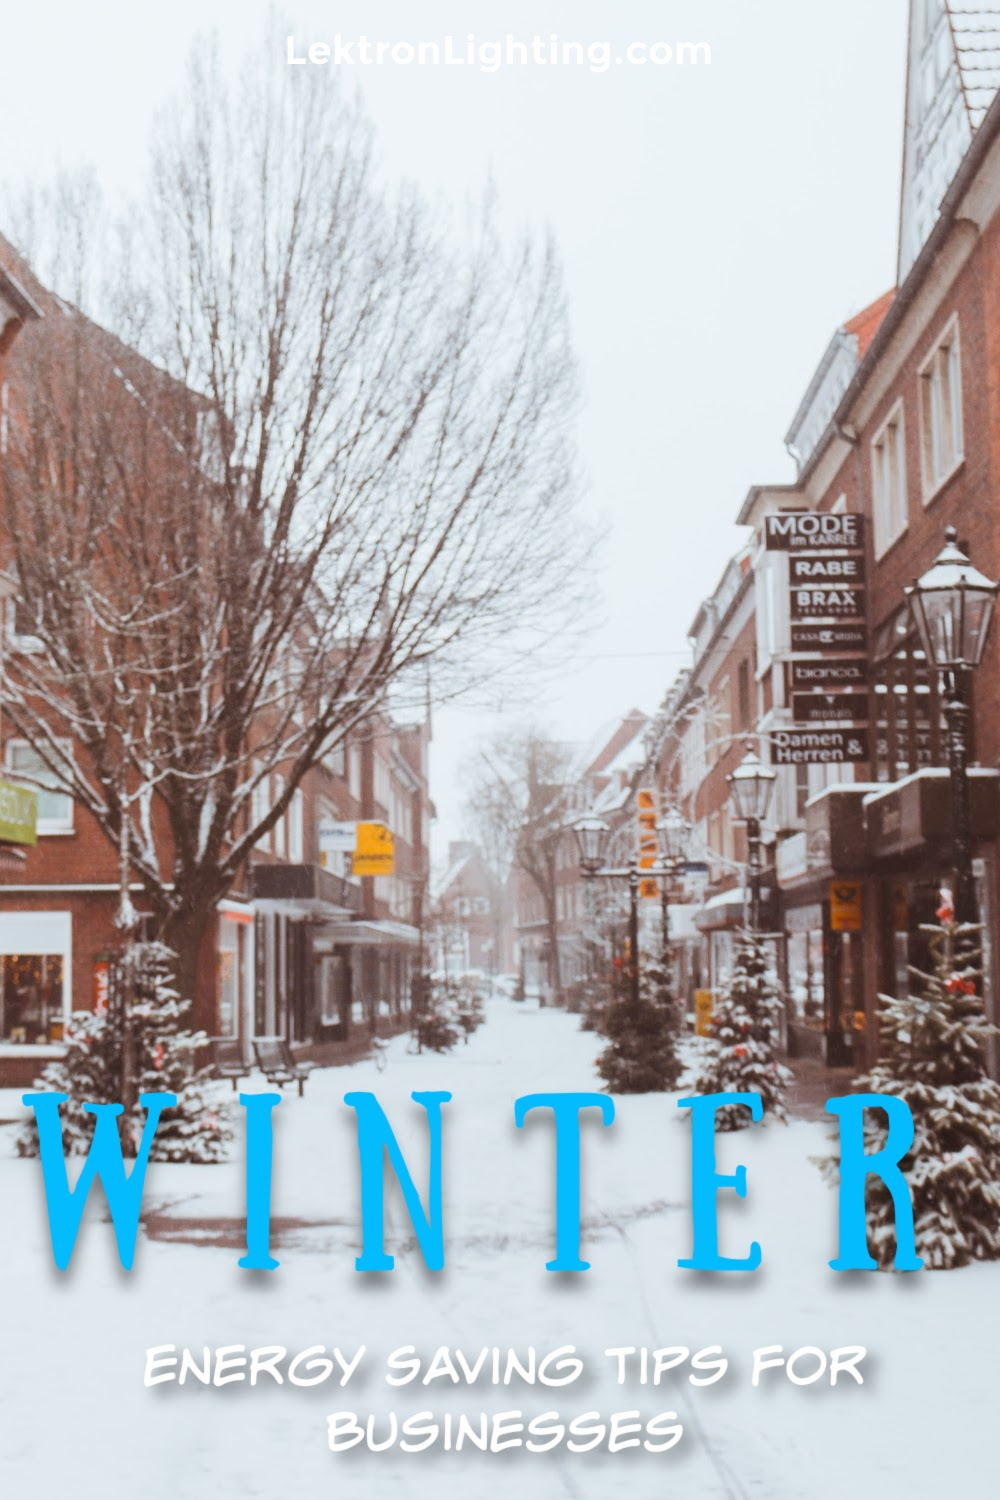 Winter energy saving tips for business can help make a difference in profits made while not making your business to cold to visit.